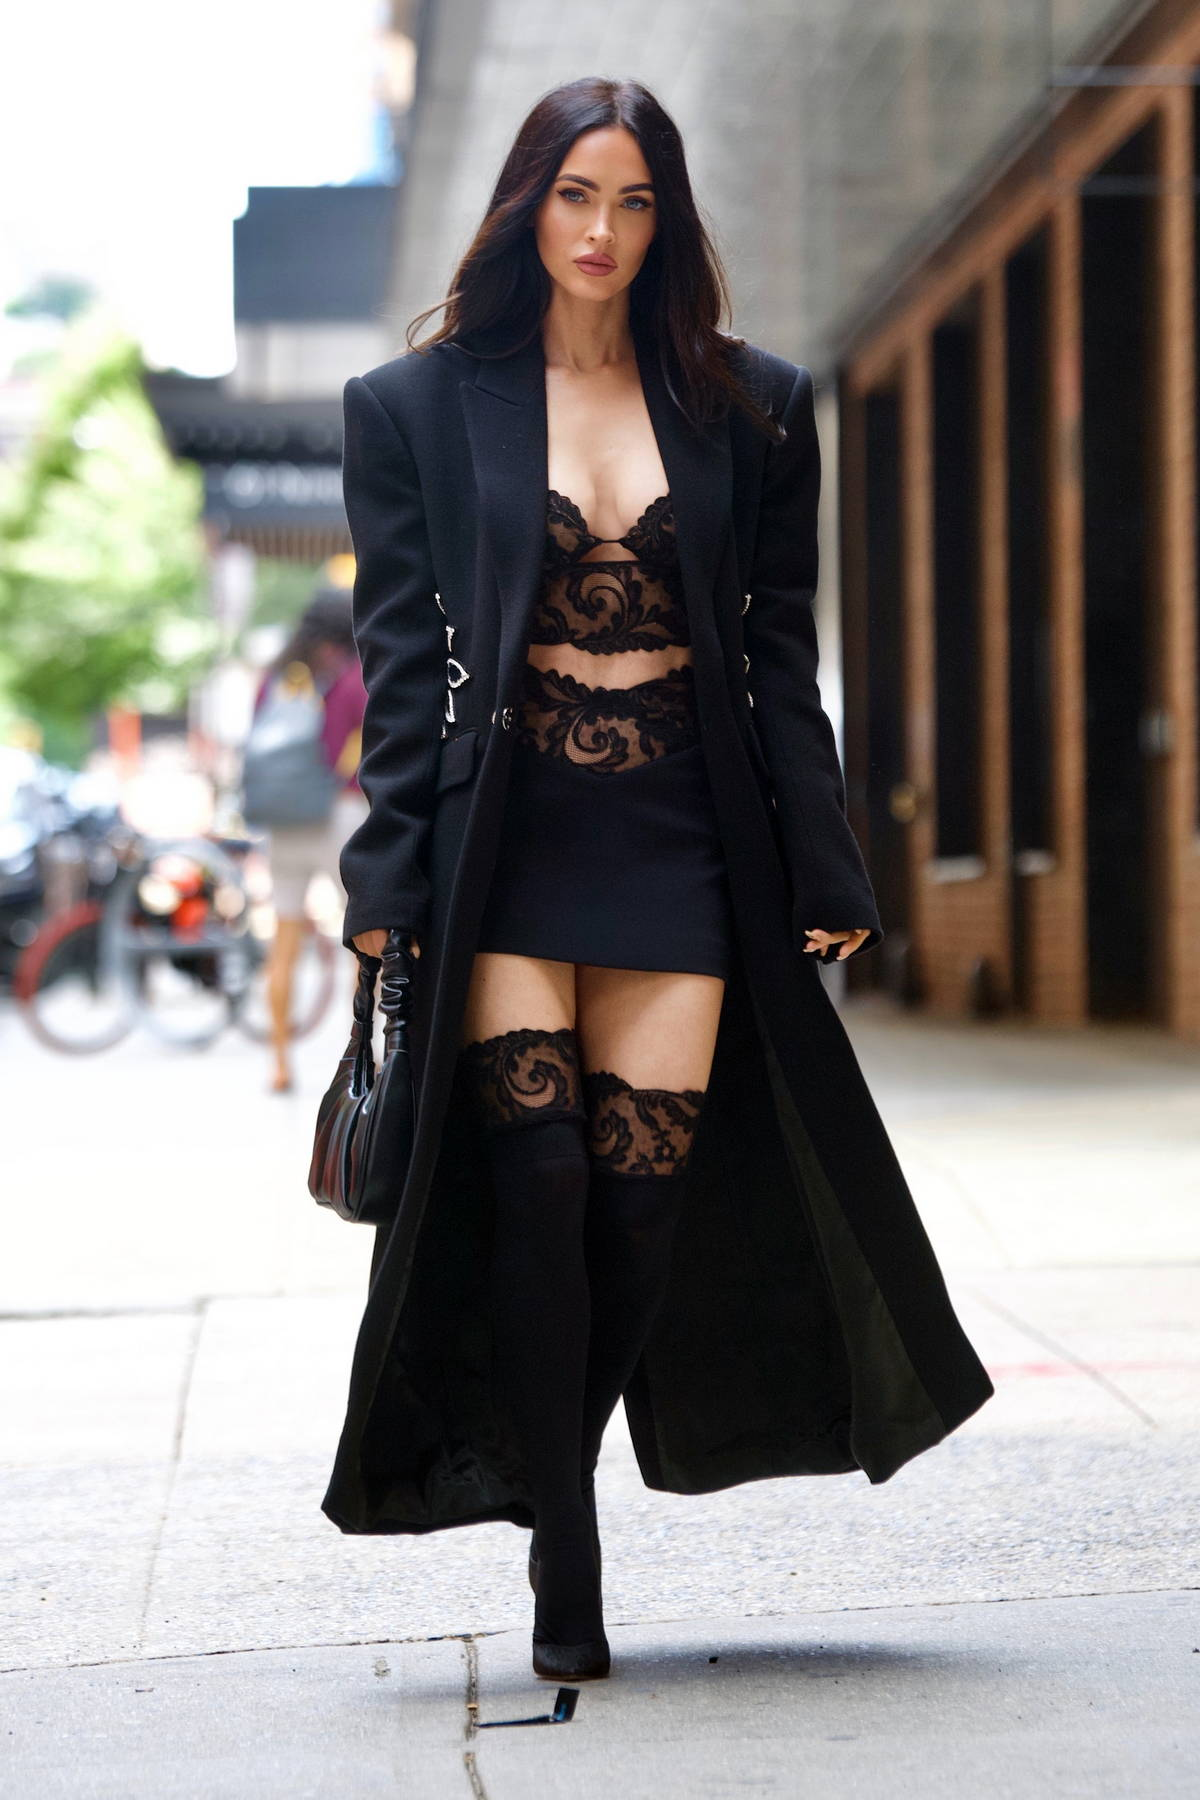 Megan Fox looks gorgeous in all-black ensemble while heading to a fitting in New York City